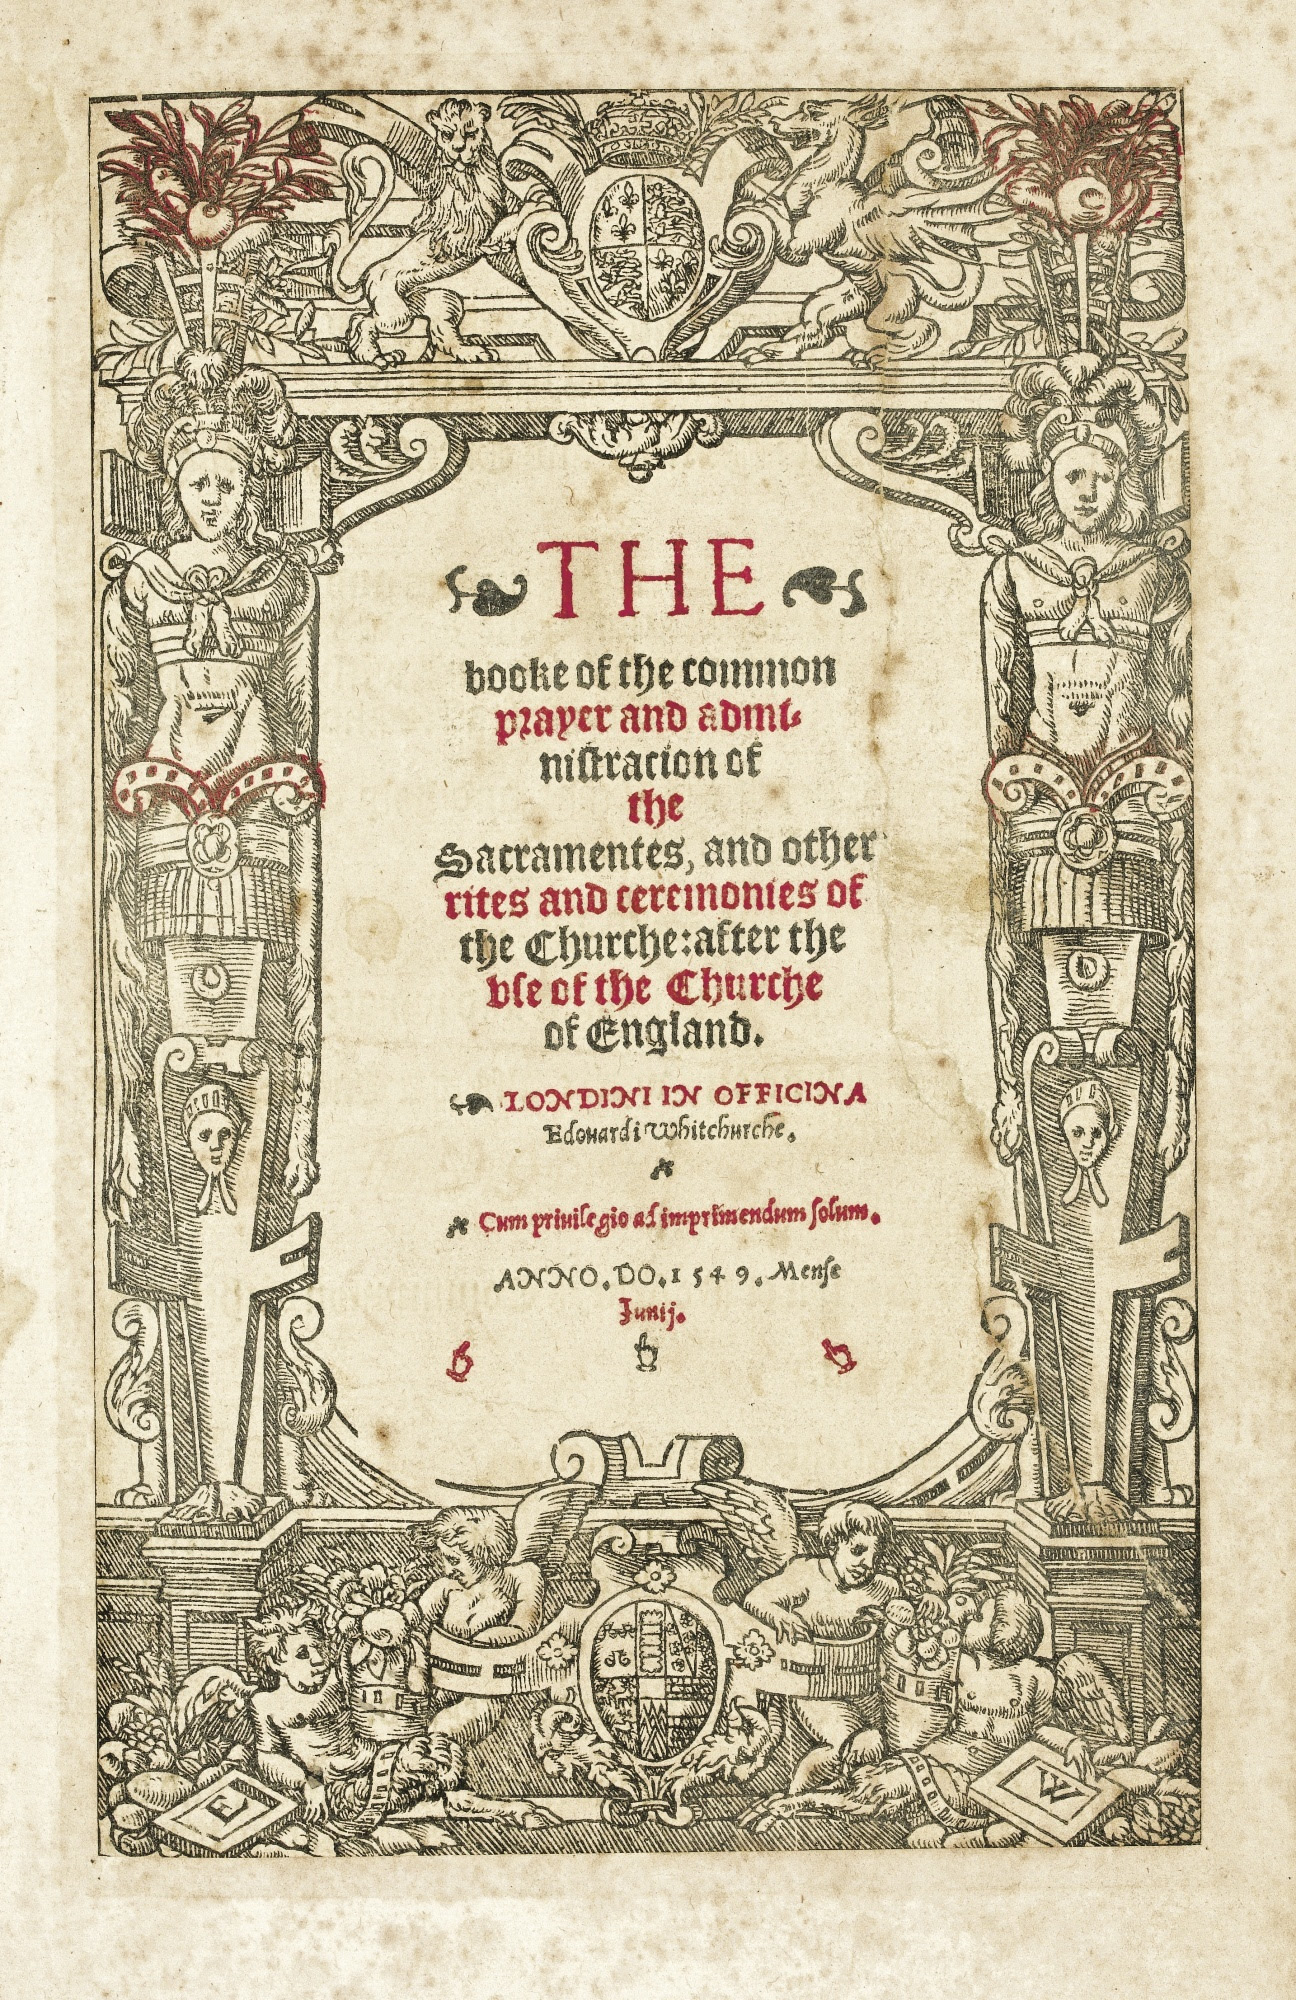 The front page of the 1549 prayer book